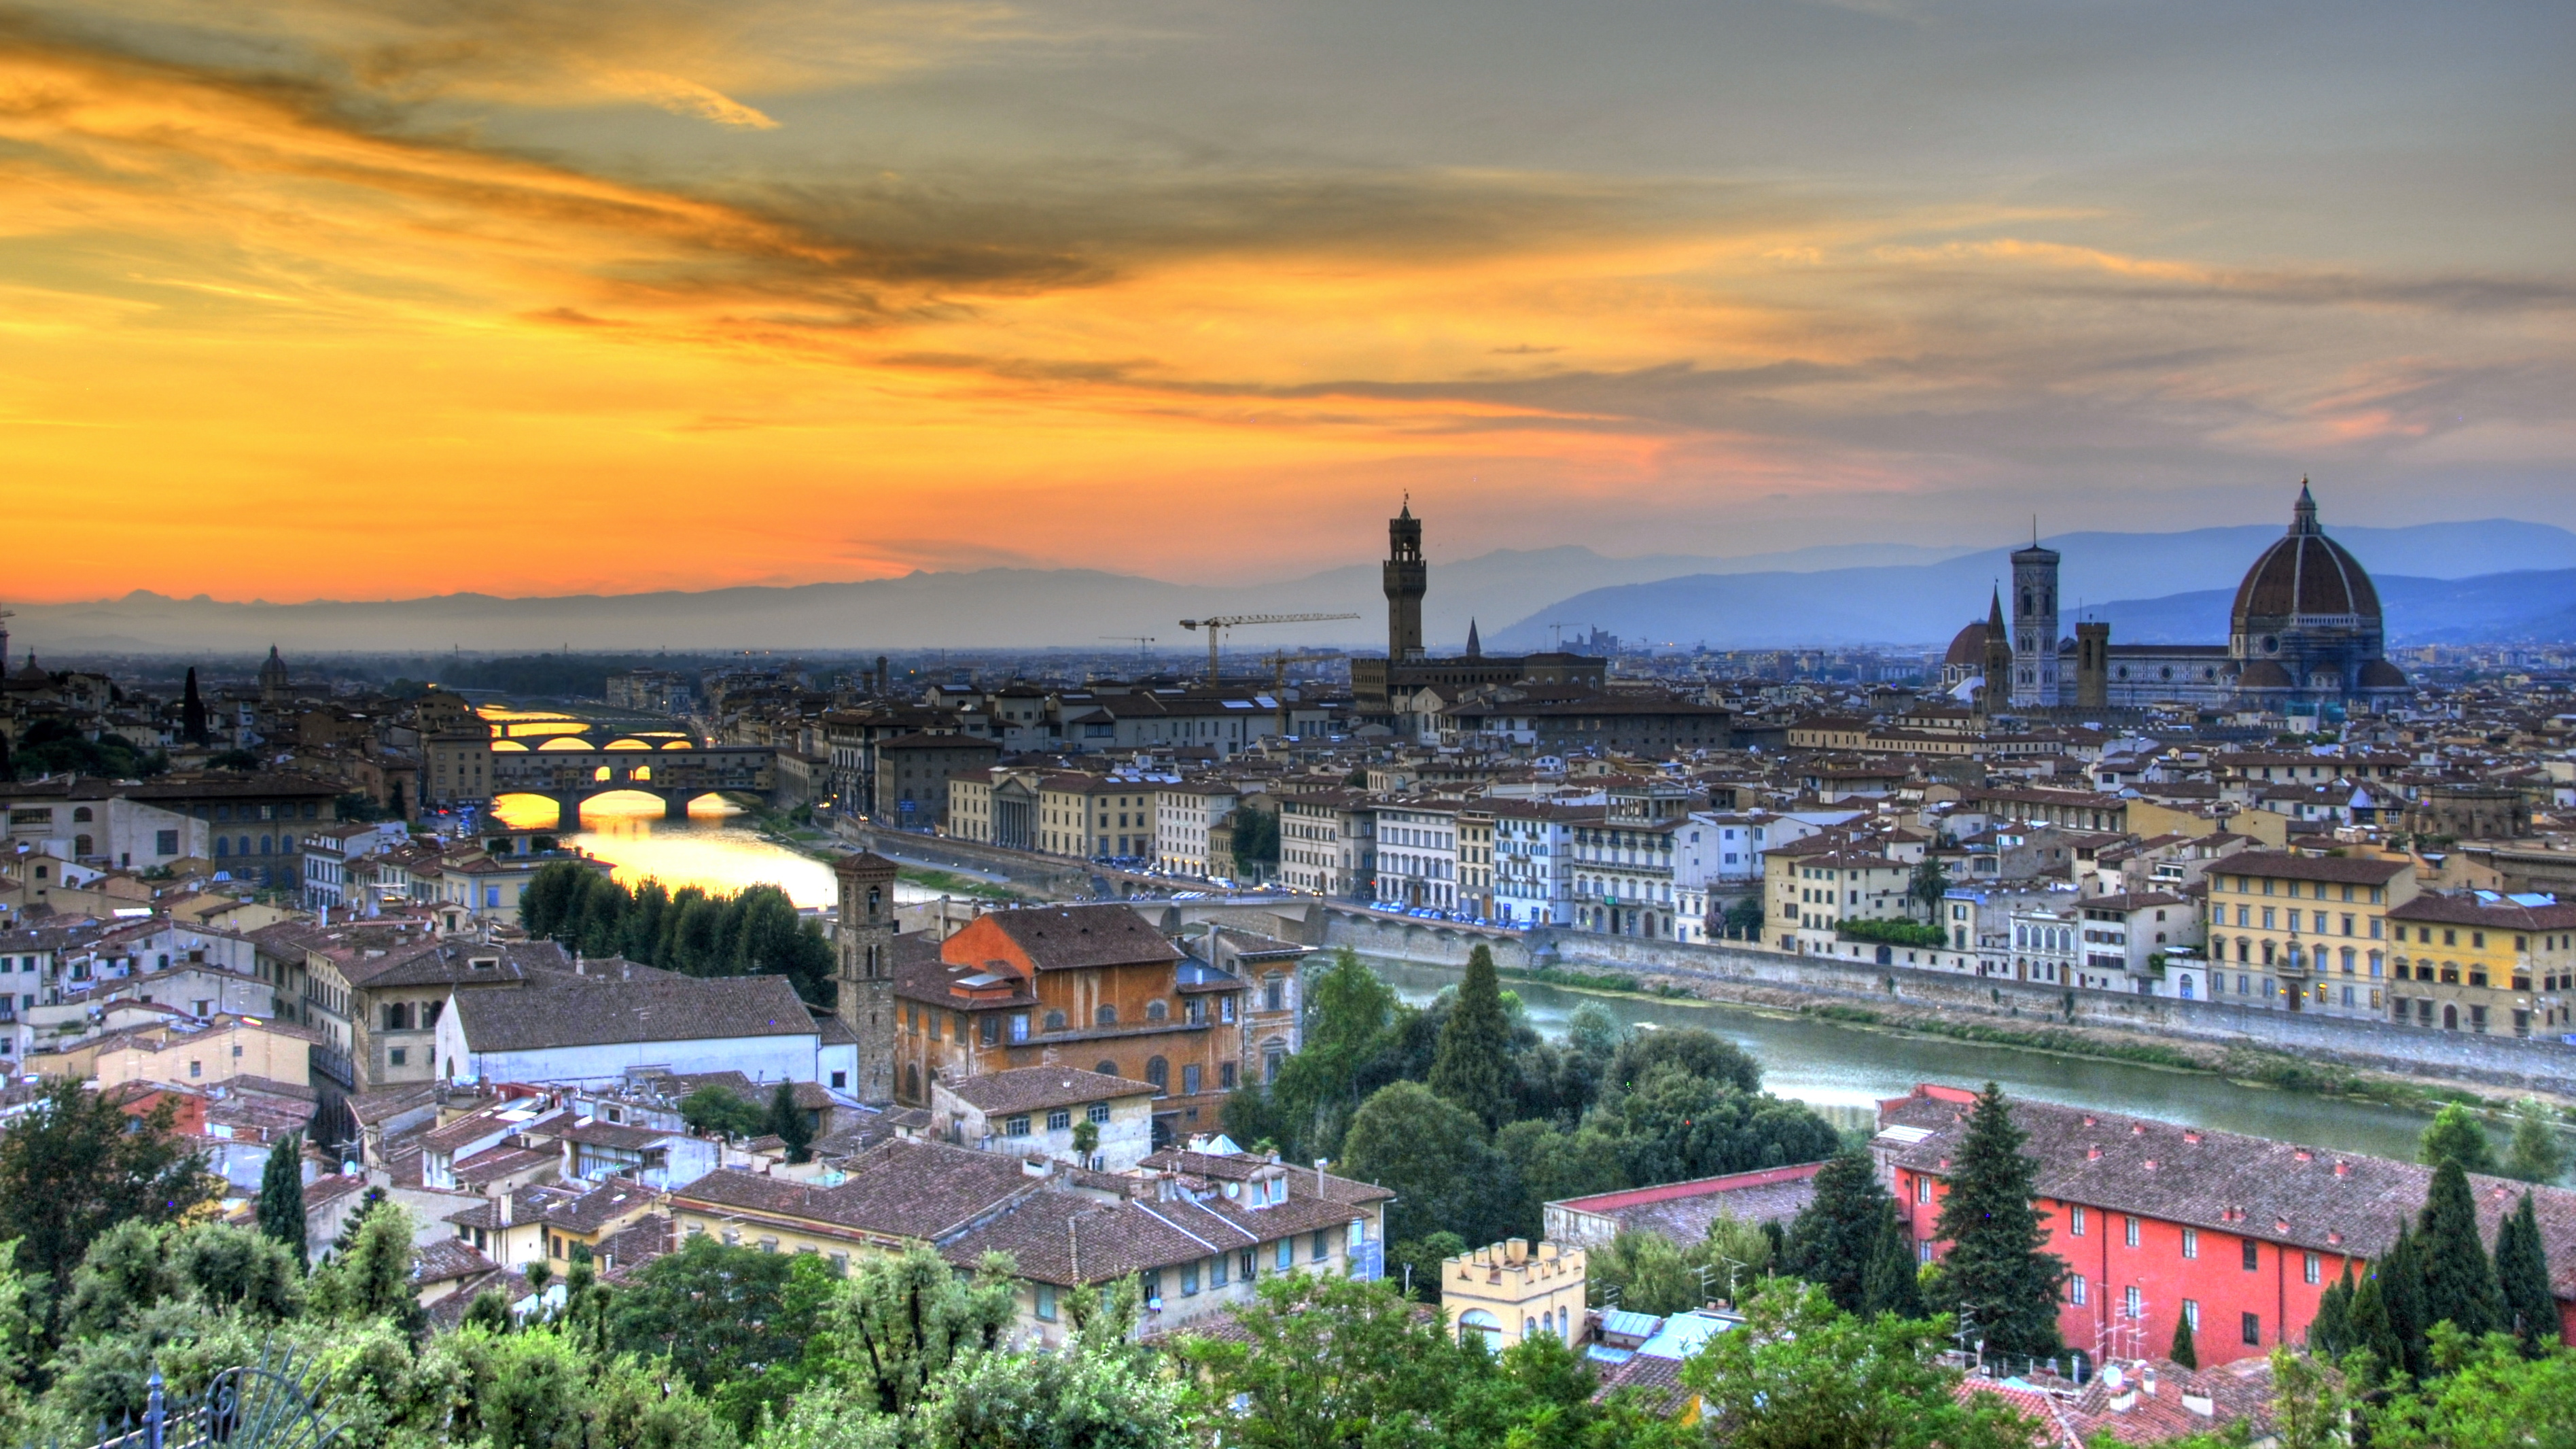 City Of Florence: Sightseeing And Landmarks